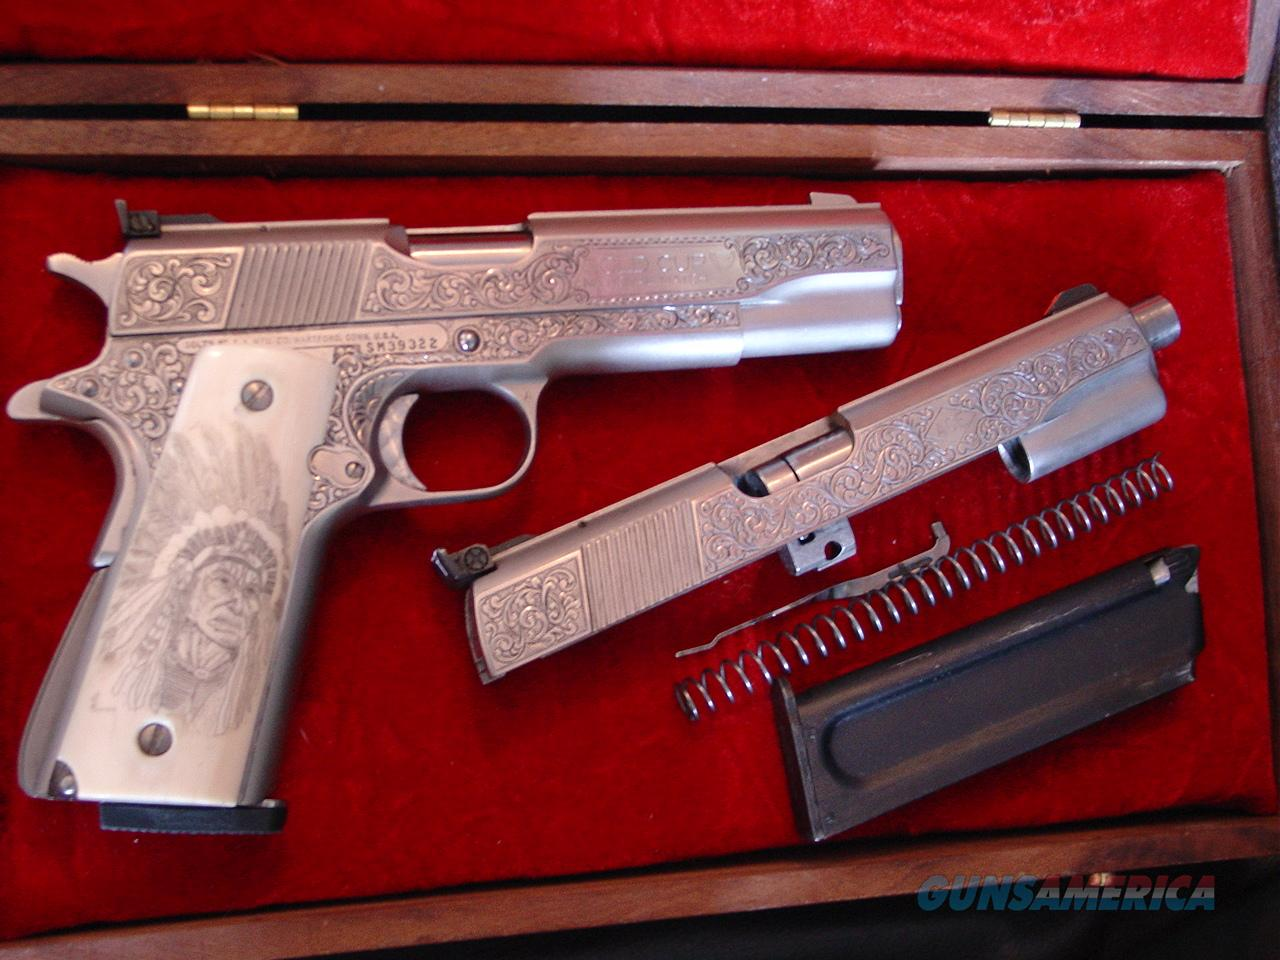 Colt Gold Cup National Match Series 70, nickel,deep relief master engraved by Clint Finley,45acp,with matching Colt Ace 22LR,engraved conversion kit,scrimshaw ivory grips,& custom heavy wood case-one of a kind package !! a work of art !!  Guns > Pistols > Colt Automatic Pistols (1911 & Var)